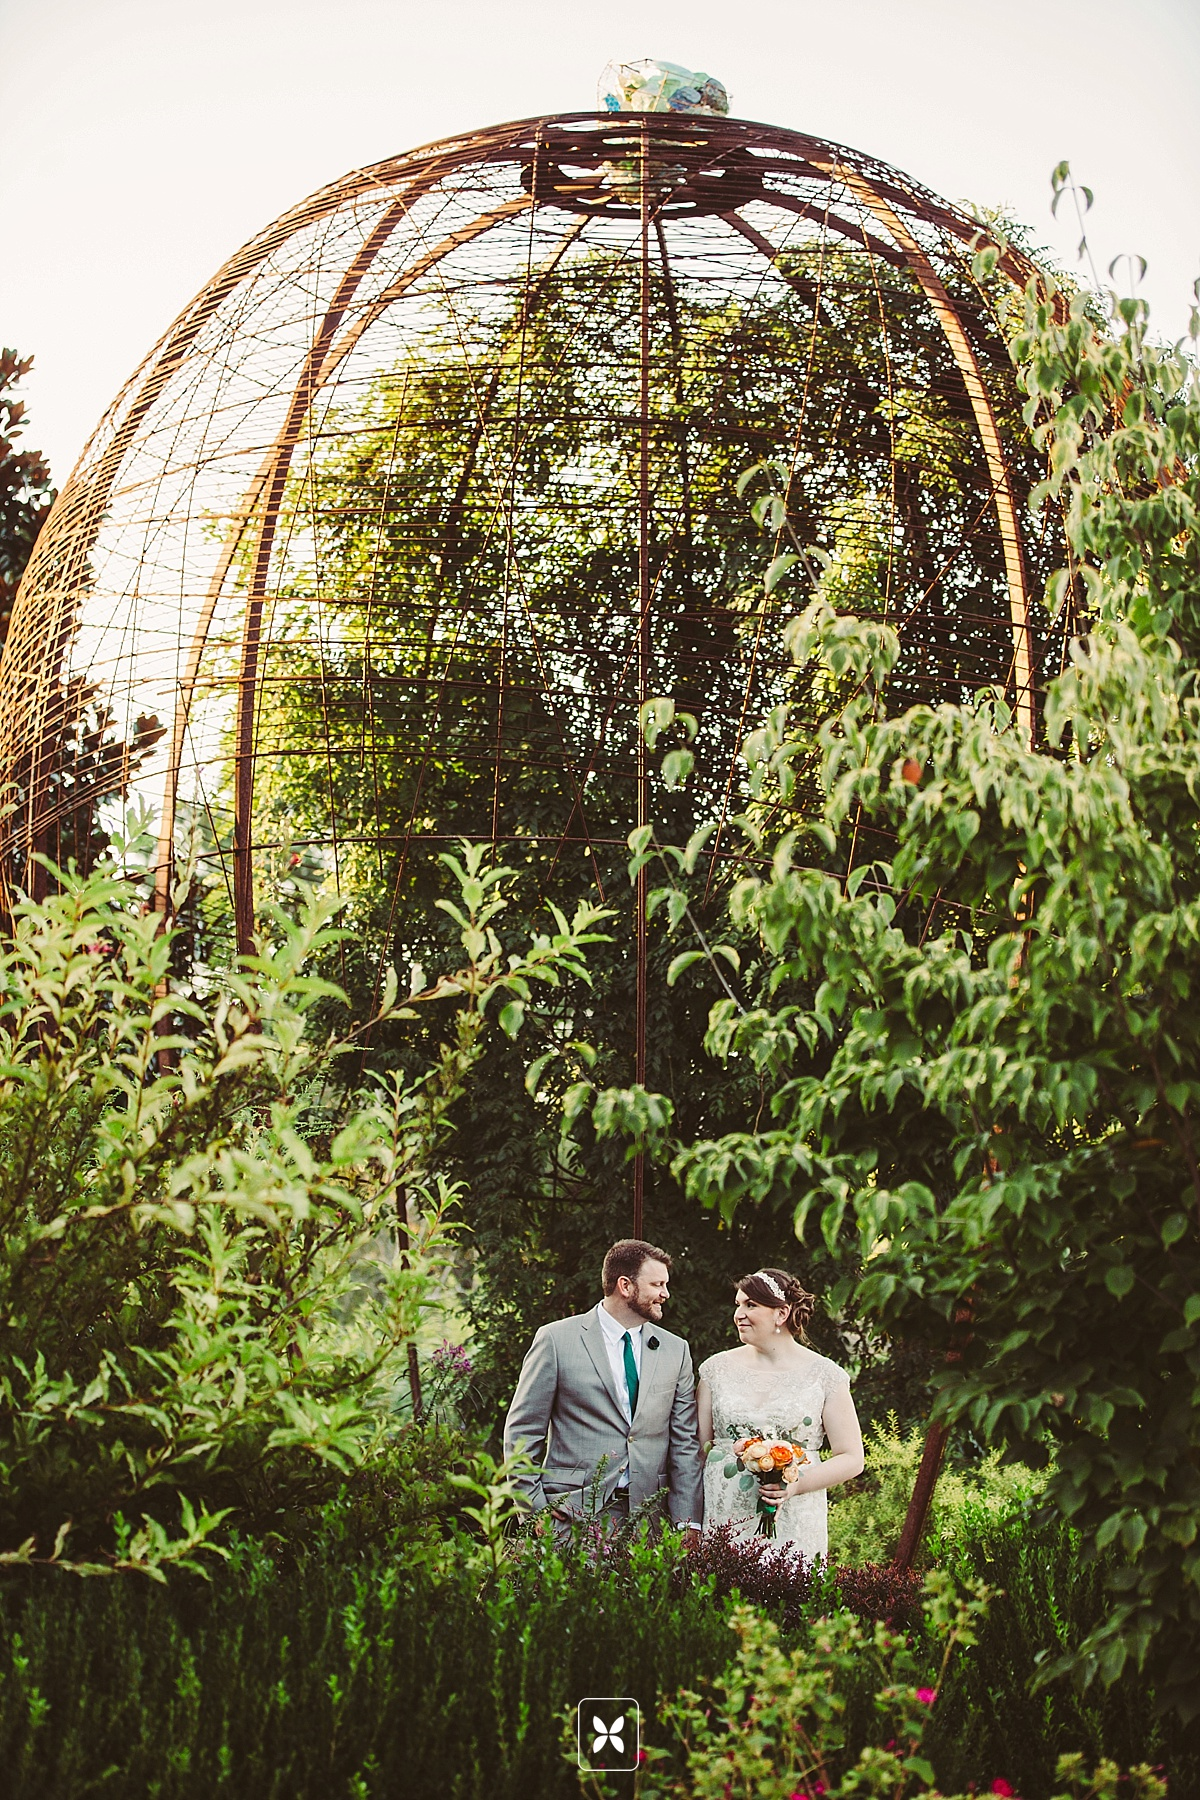 Wedding Photo Gallery | Botanical Garden of the Ozarks